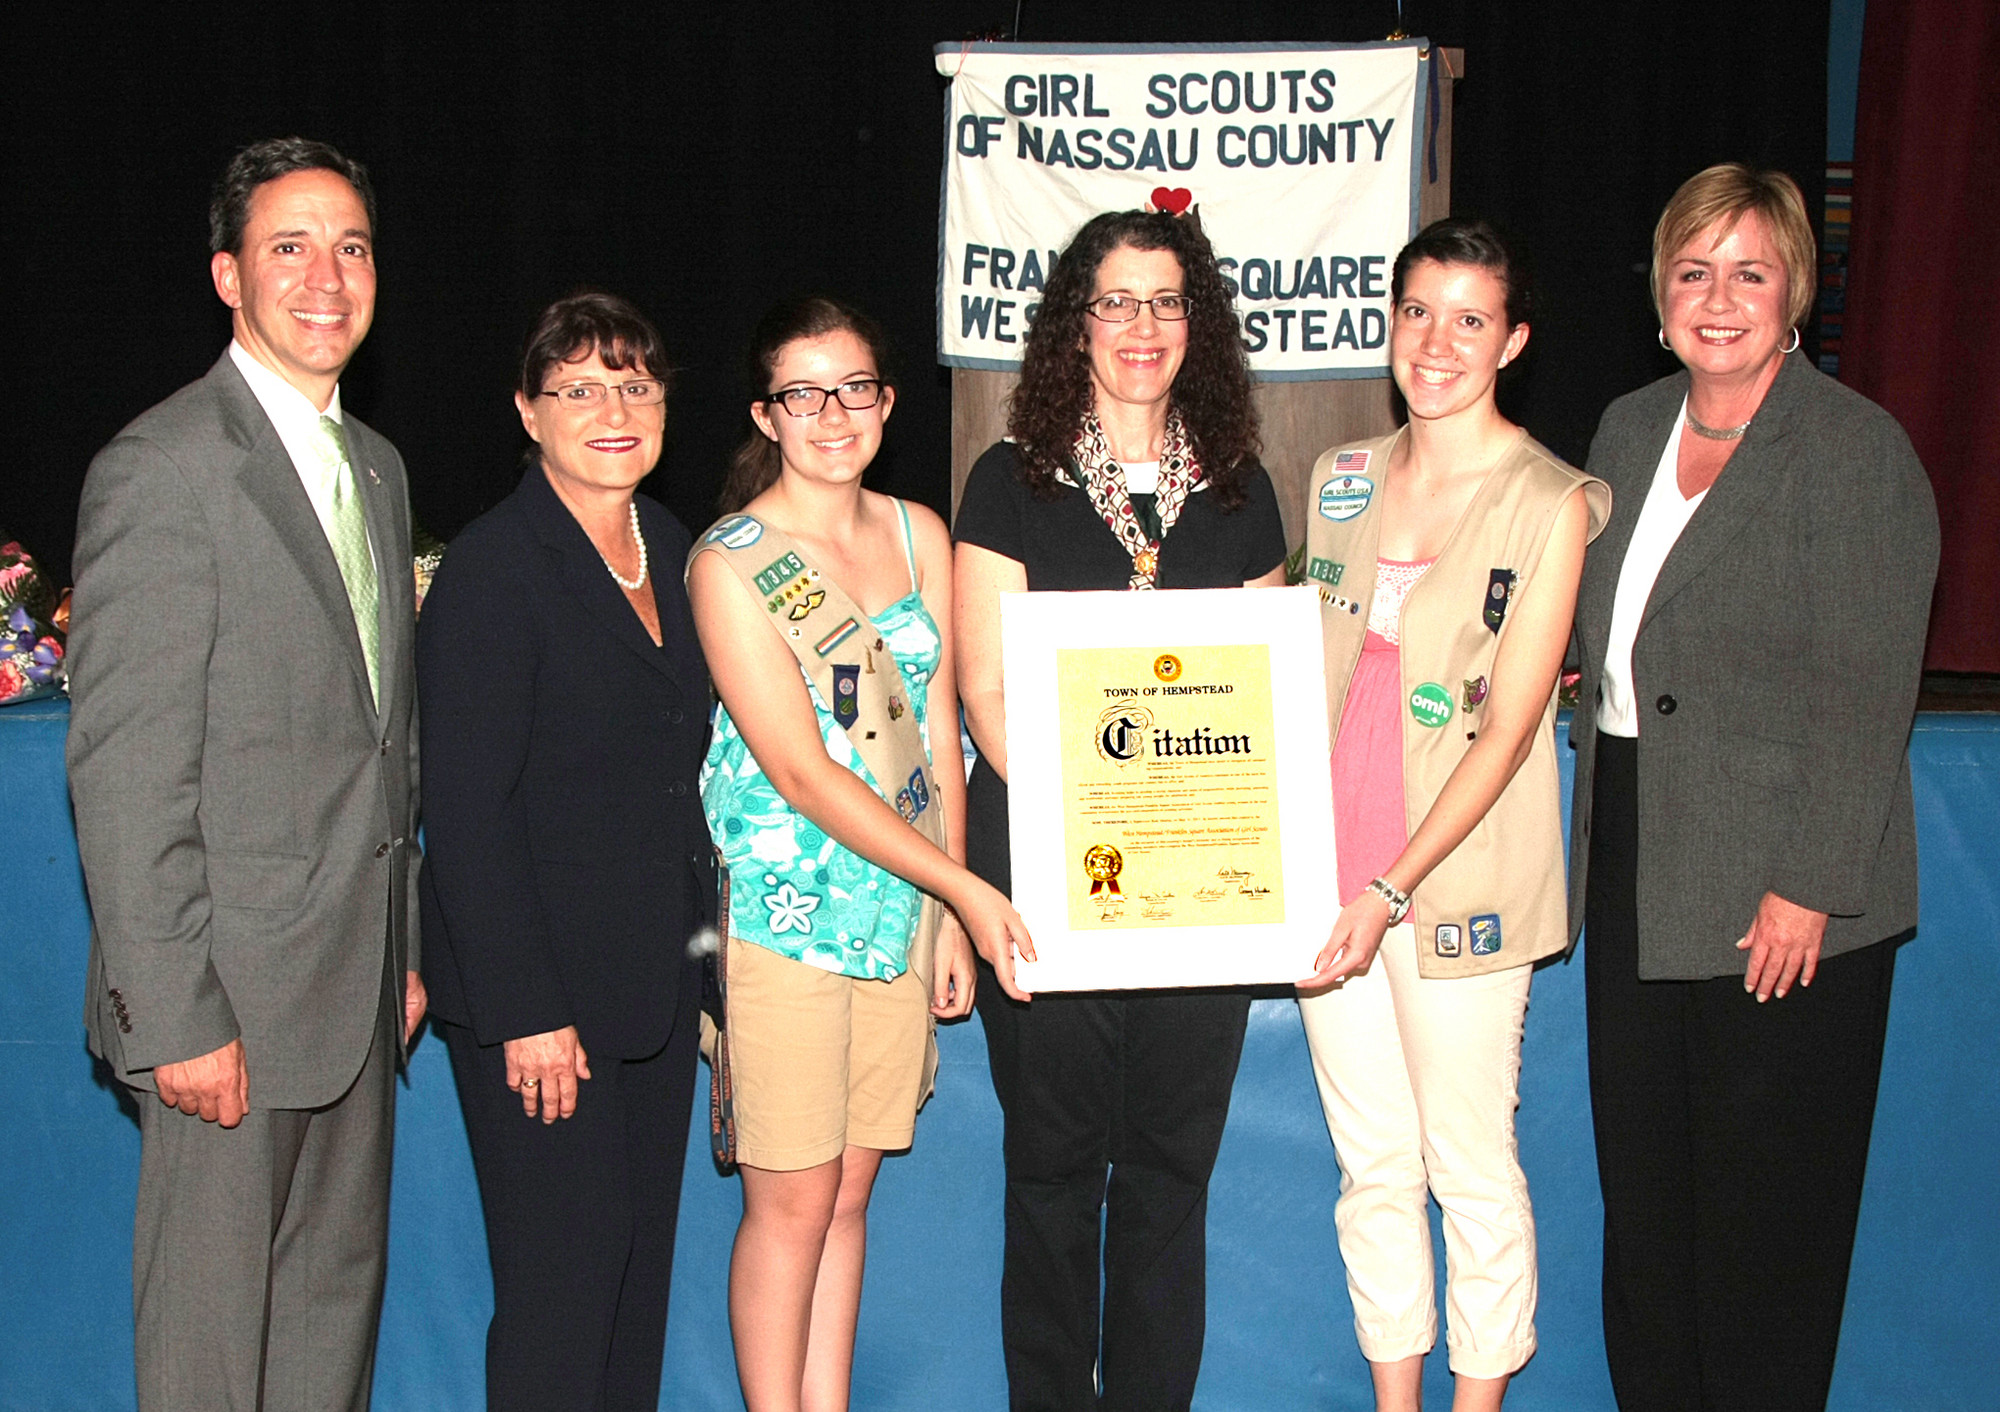 New York State Senator Jack Martins, left, Nassau County Clerk Maureen O'Connell and Town Supervisor Kate Murray, right, honored Troop 1345 Leader Carol Anne Stiklickas, Emily Stiklickas and Gold Awardee Sara Stiklickas.